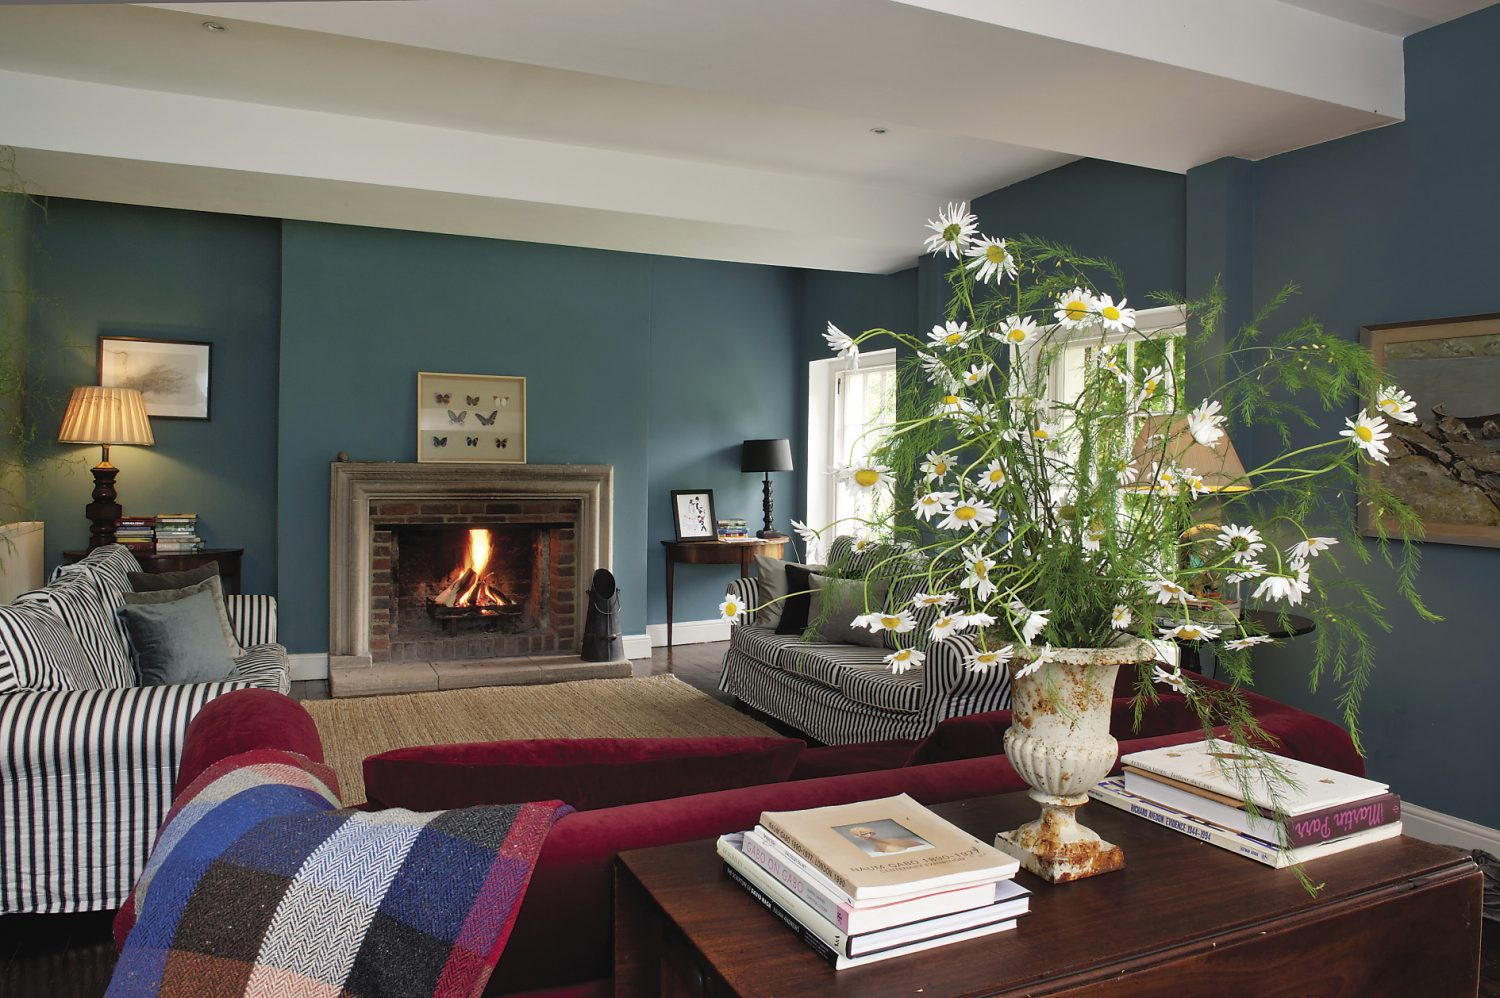 Across the wide hallway is the drawing room. A pair of striped sofas face each other in front of the fireplace and a garnet red velvet sofa has its back to the window overlooking the courtyard